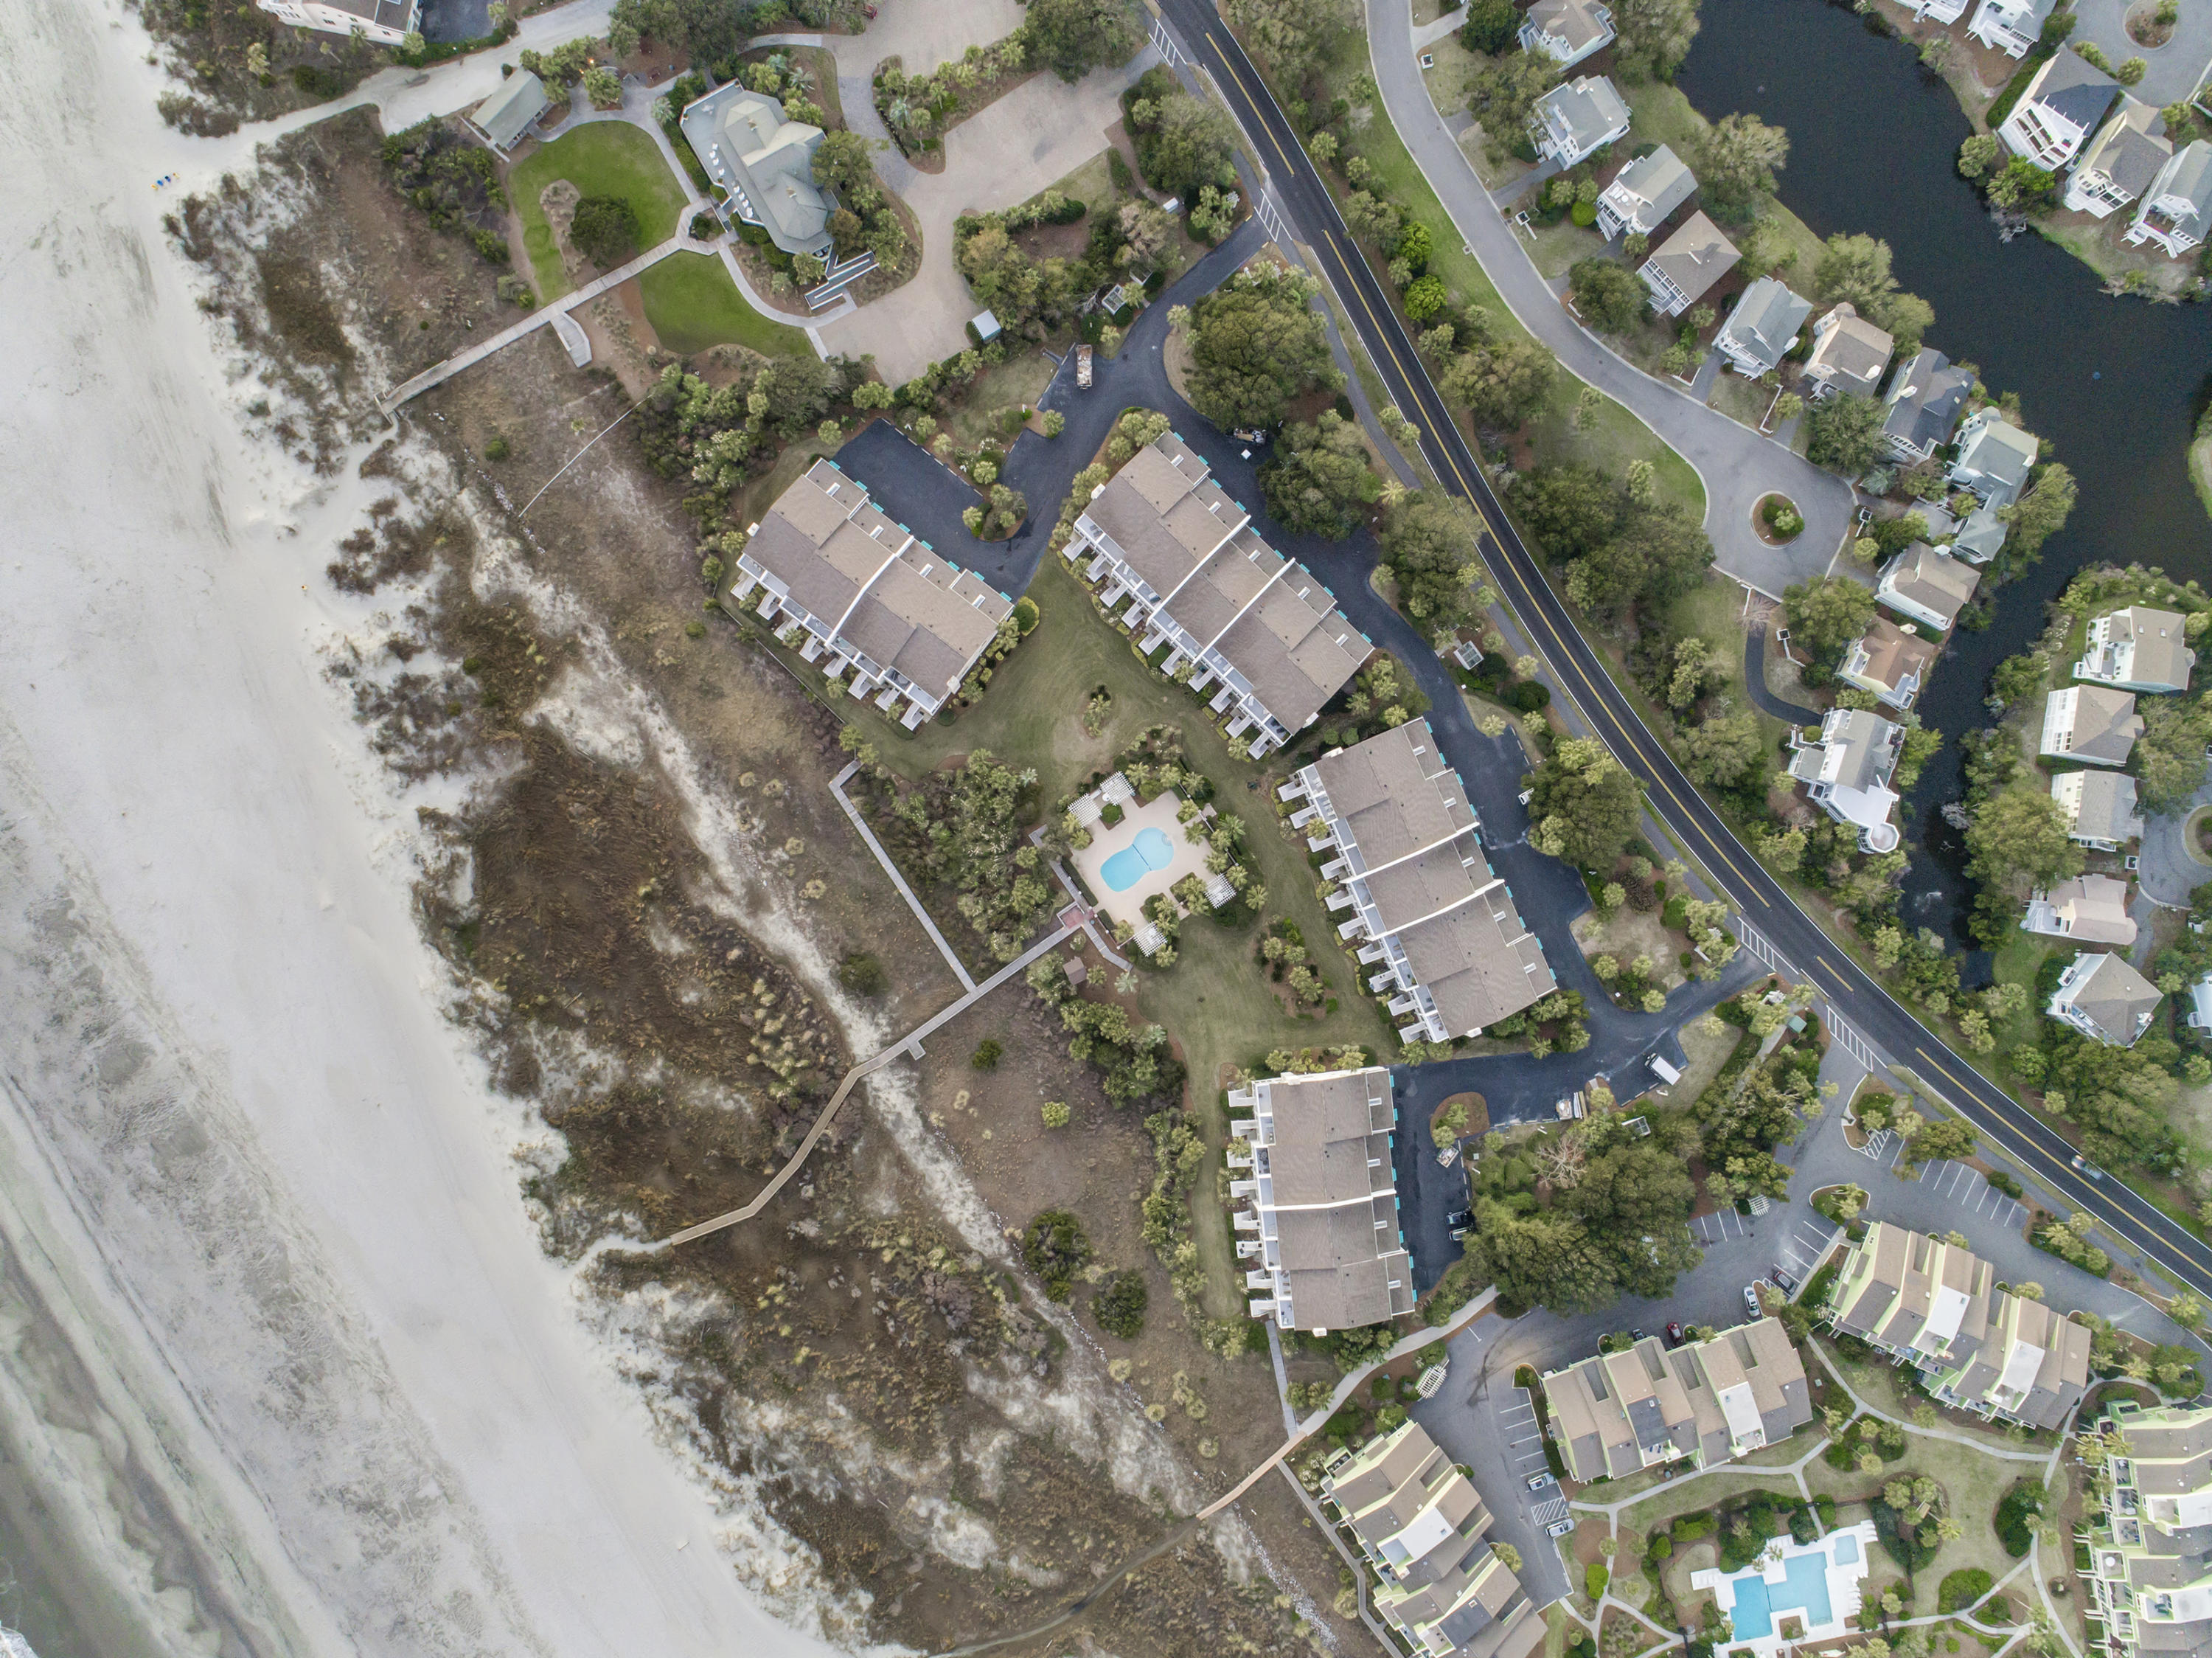 Beach Club Villas Homes For Sale - 51 Beach Club Villas, Isle of Palms, SC - 4